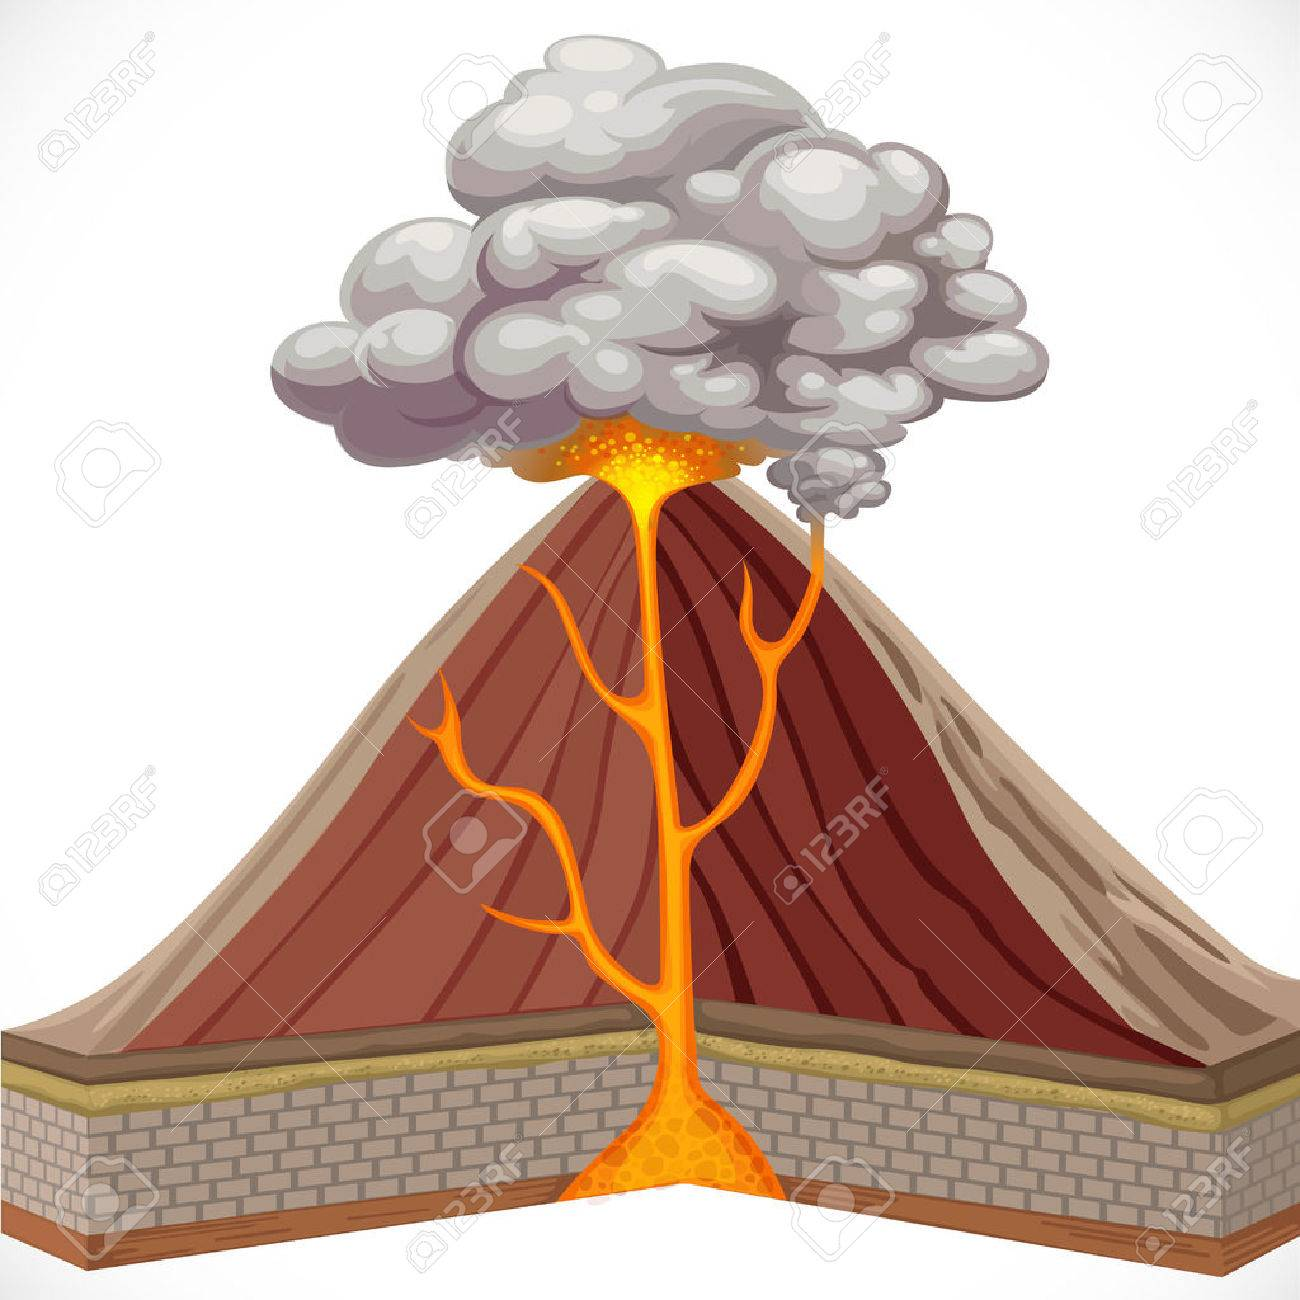 Diagram of volcano isolated on white background royalty free diagram of volcano isolated on white background stock vector 31070827 ccuart Gallery